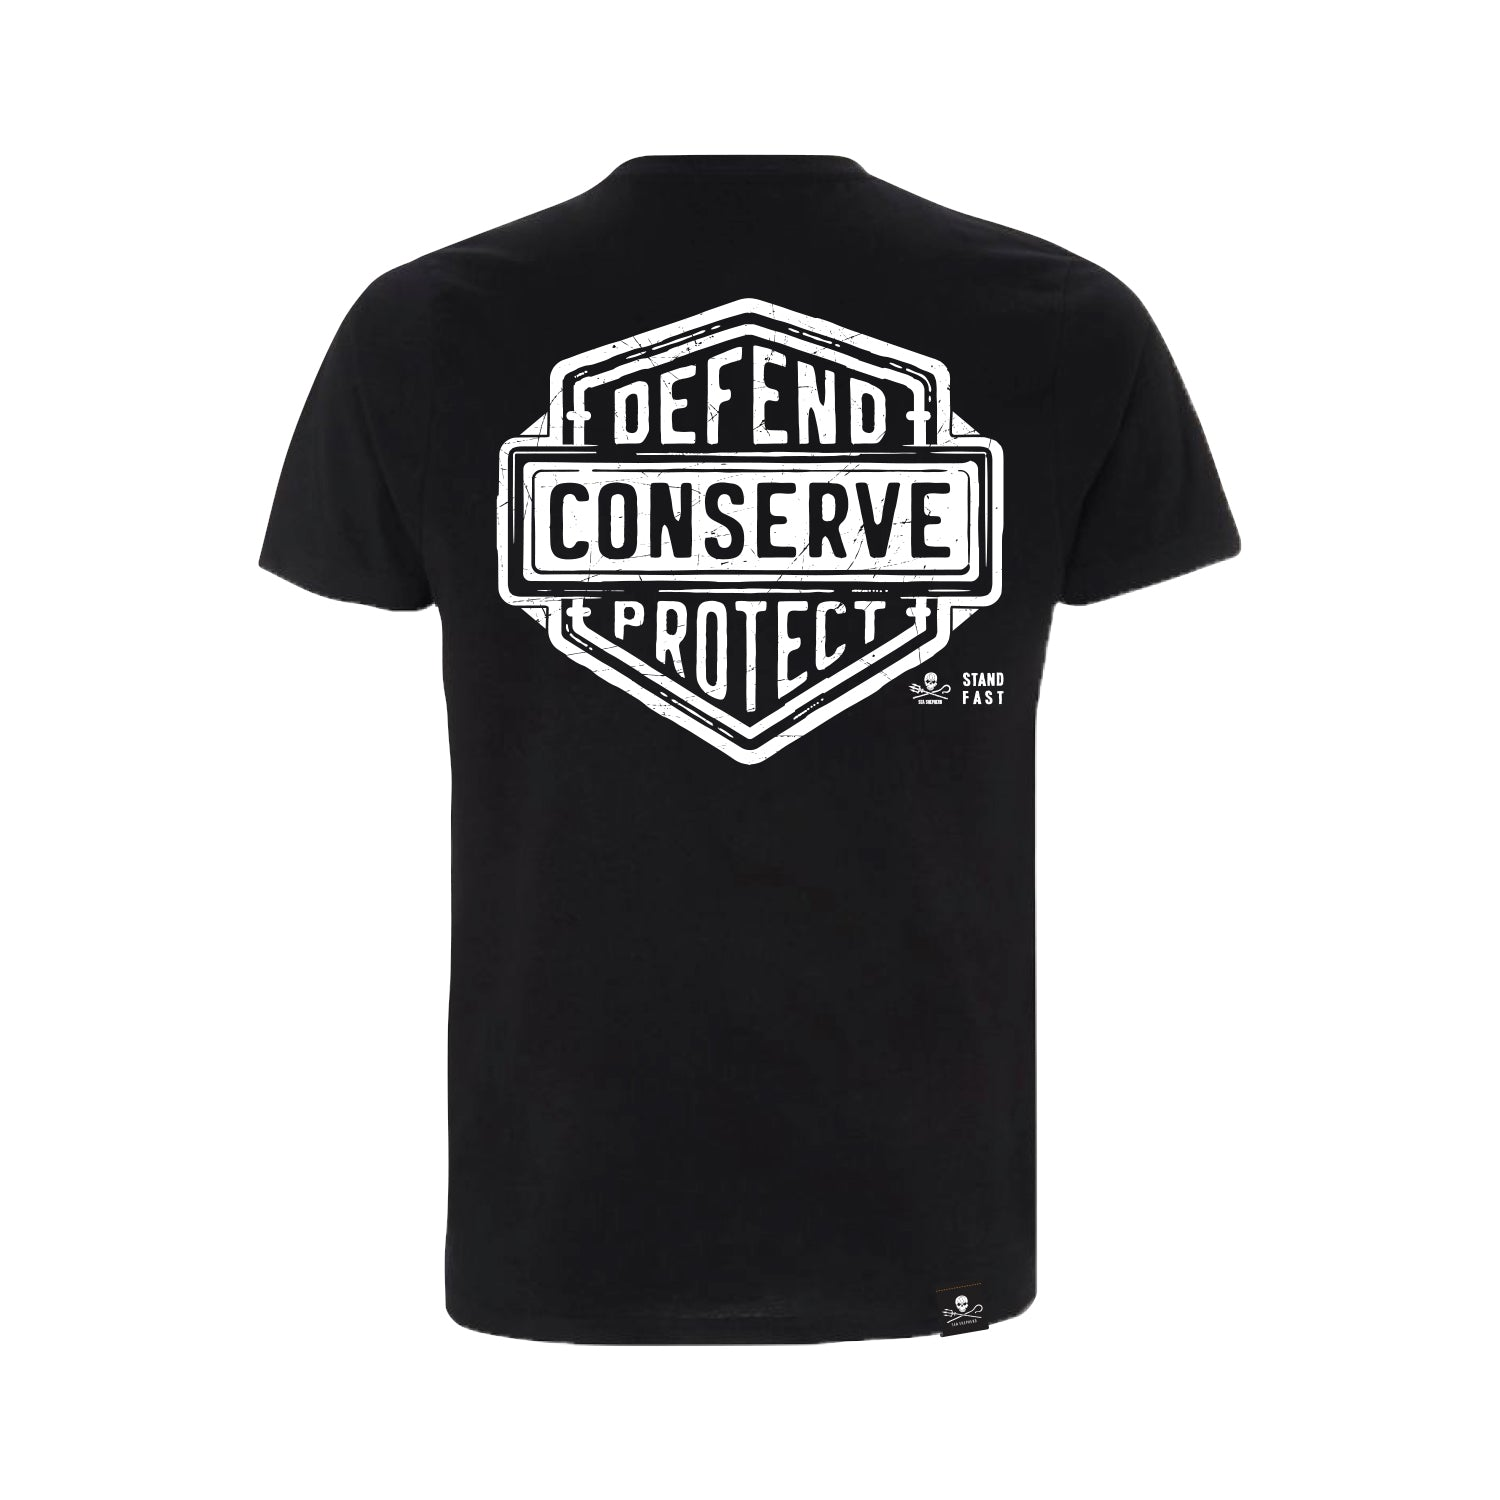 Sea Shepherd Stand Fast - Defend Conserve Protect Forever 100% Organic Cotton Jersey - Black Tee